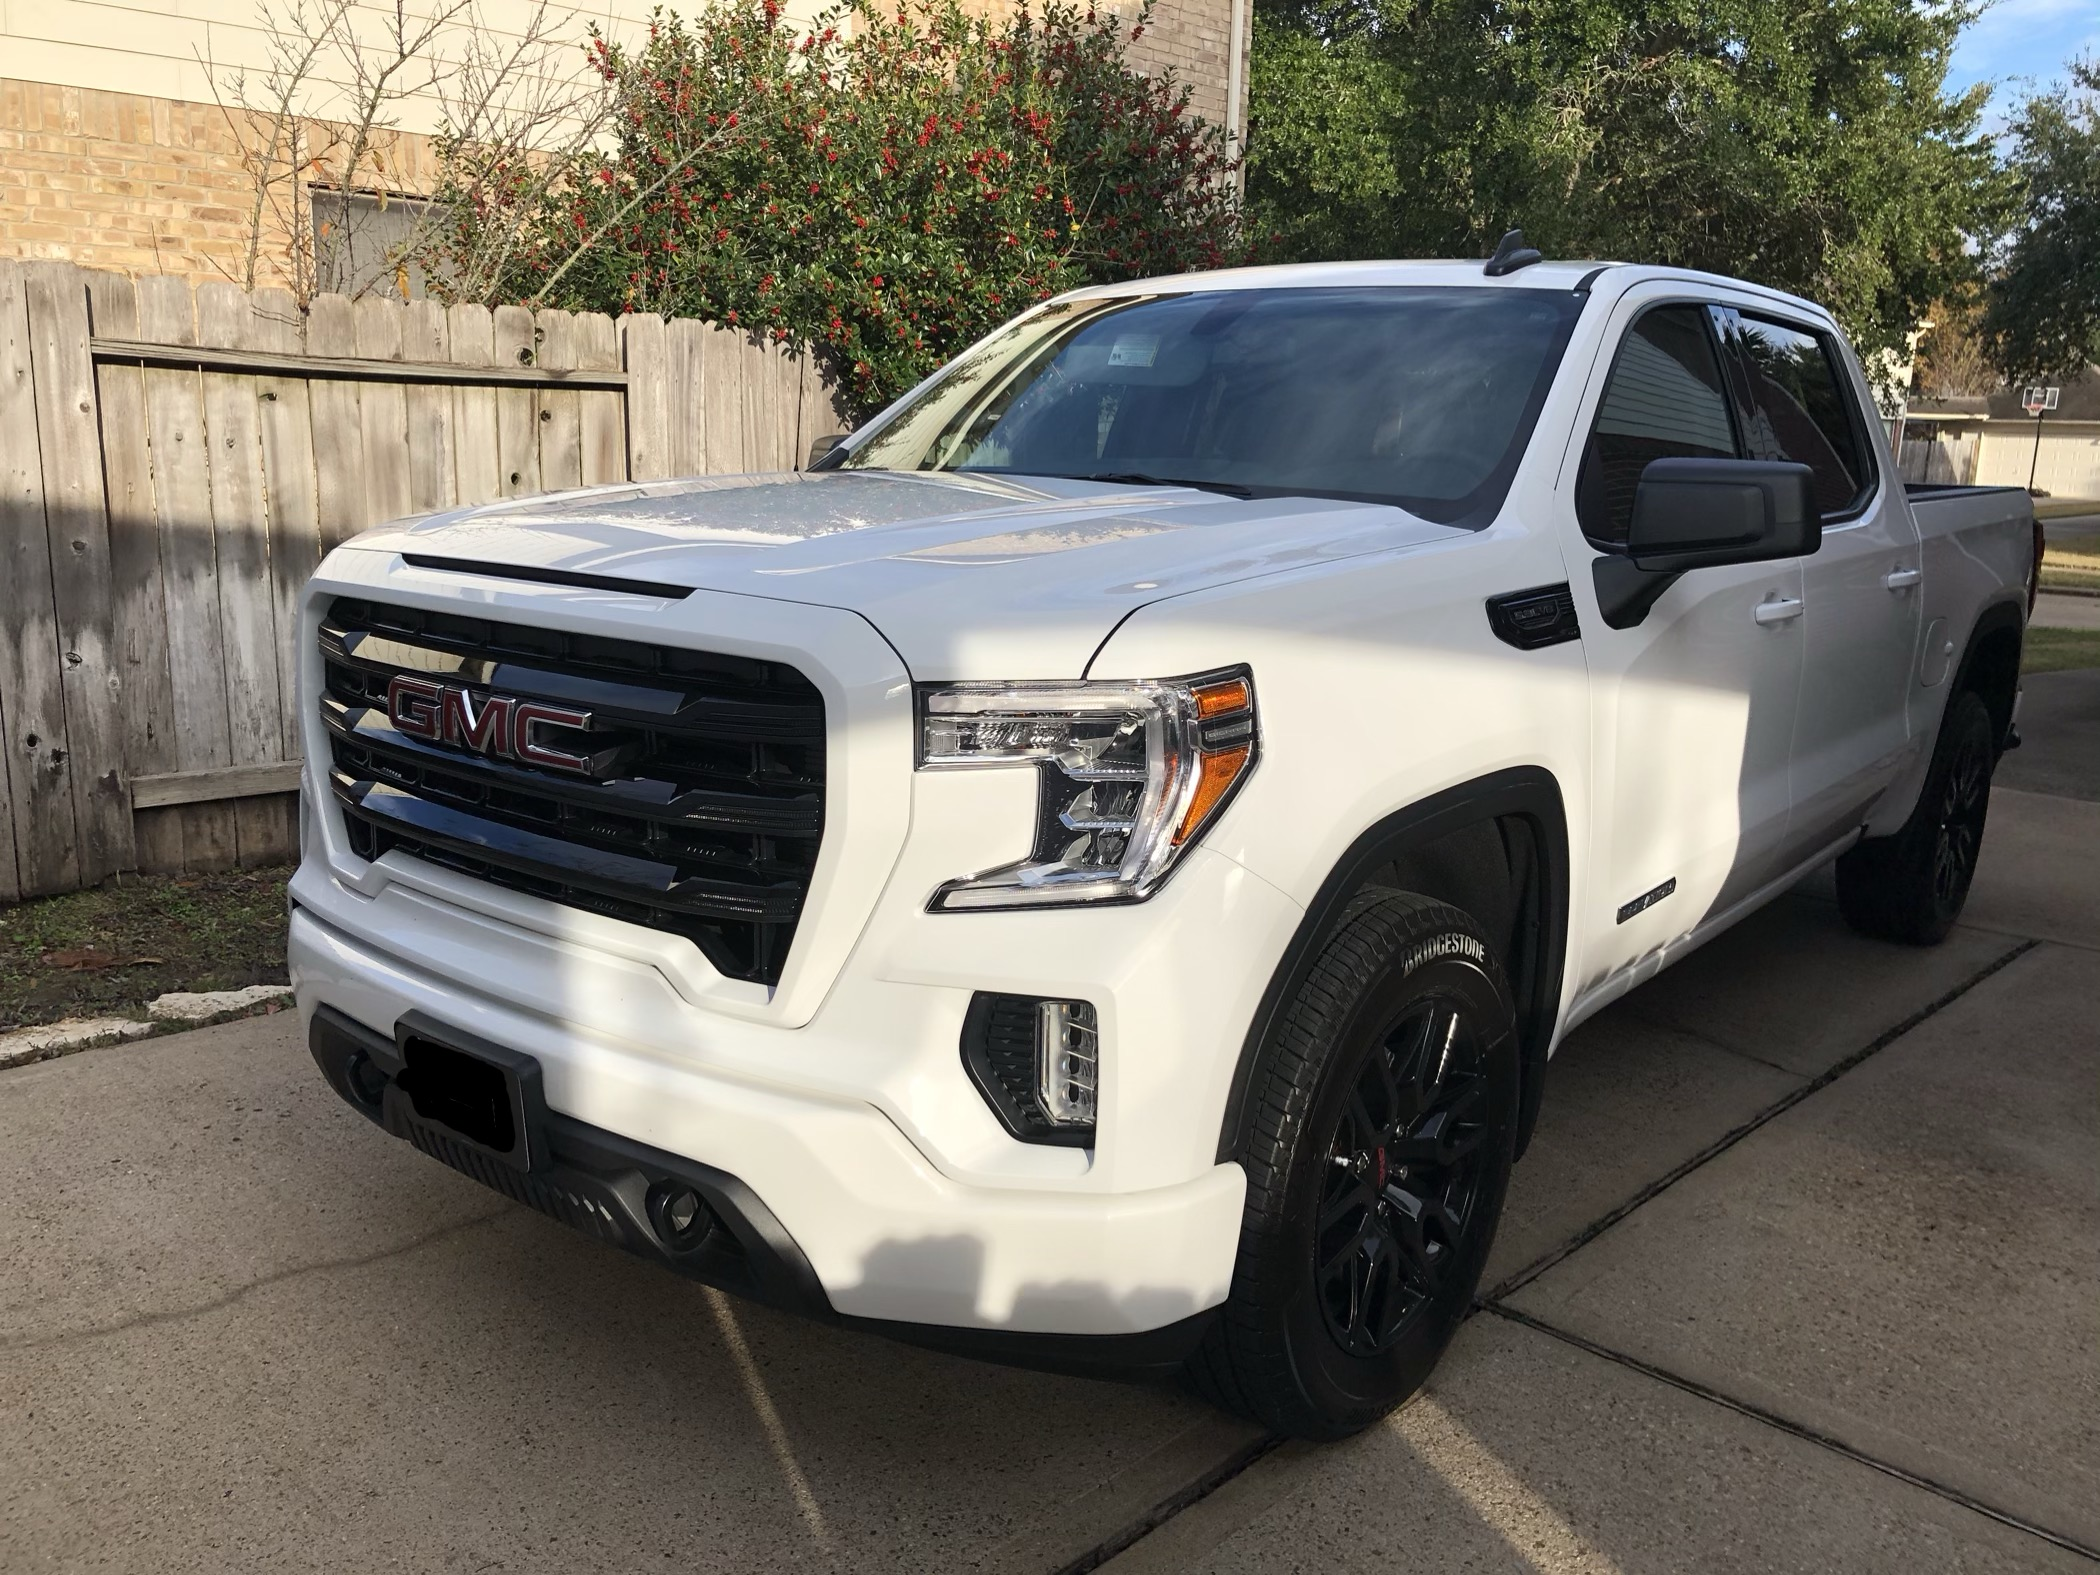 Signed 2020 Gmc Sierra 1500 Elevation Crewcab Msrp 47k 368 With 368 Due Includes Tx Tax Plus 700 Costco Cash Card Share Deals Tips Leasehackr Forum